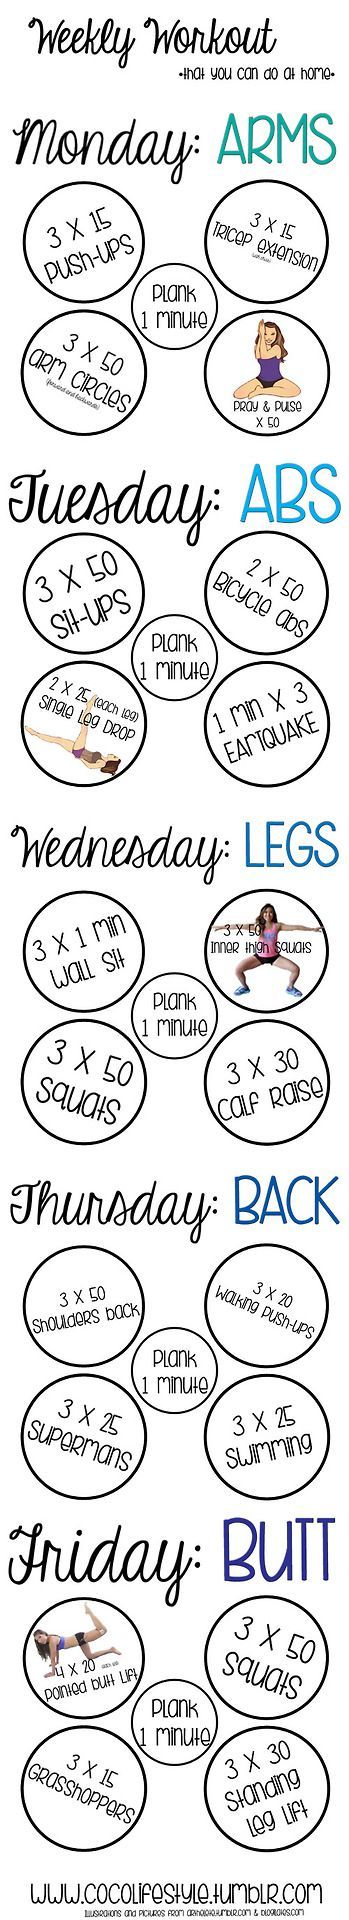 weekly workout circuit plan.jpg